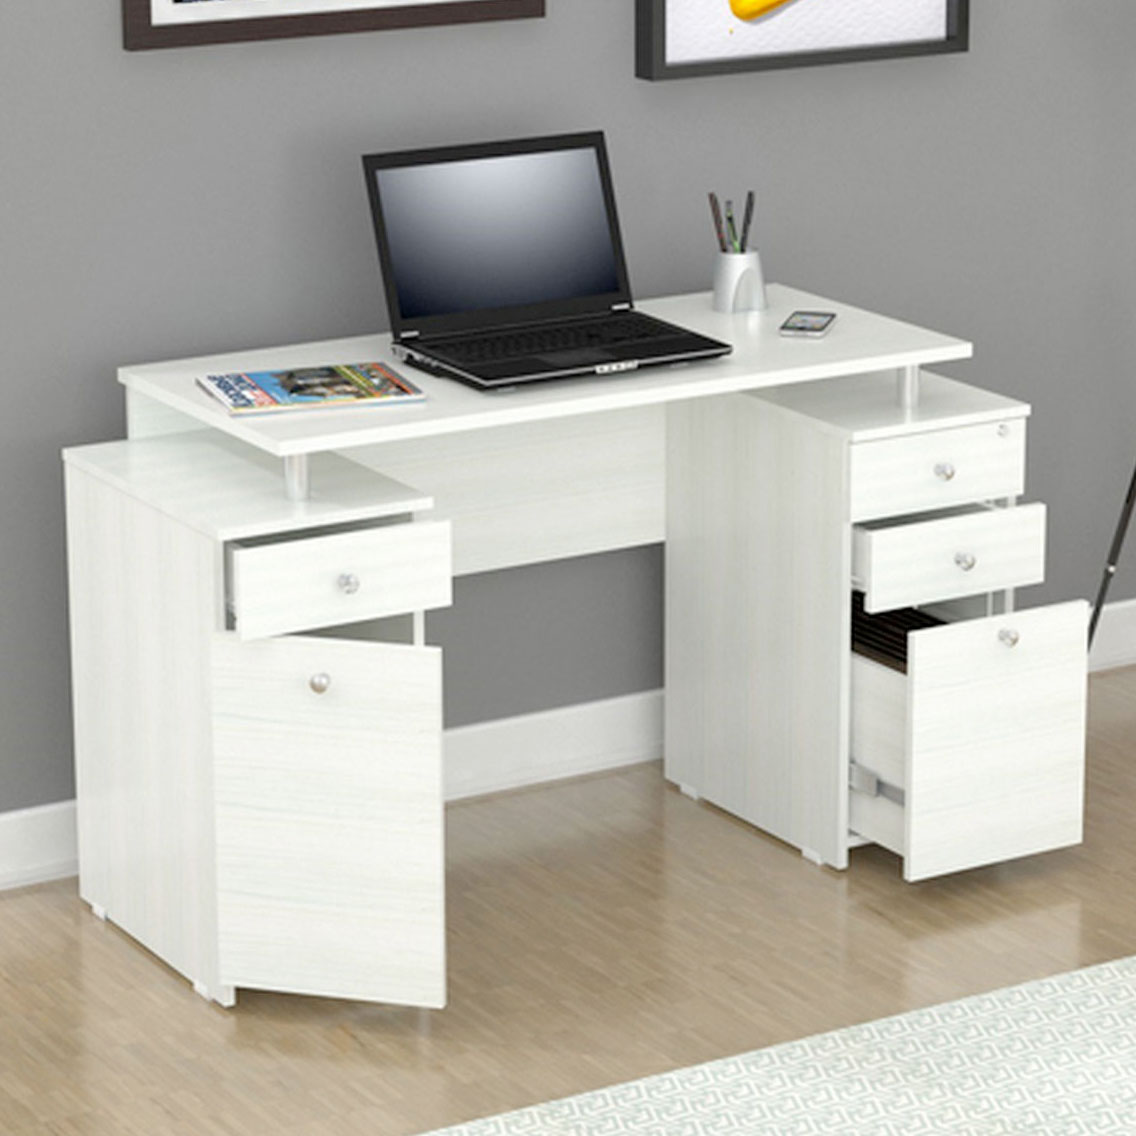 White Writing Desk with Drawers  Storage  Gift Ideas for